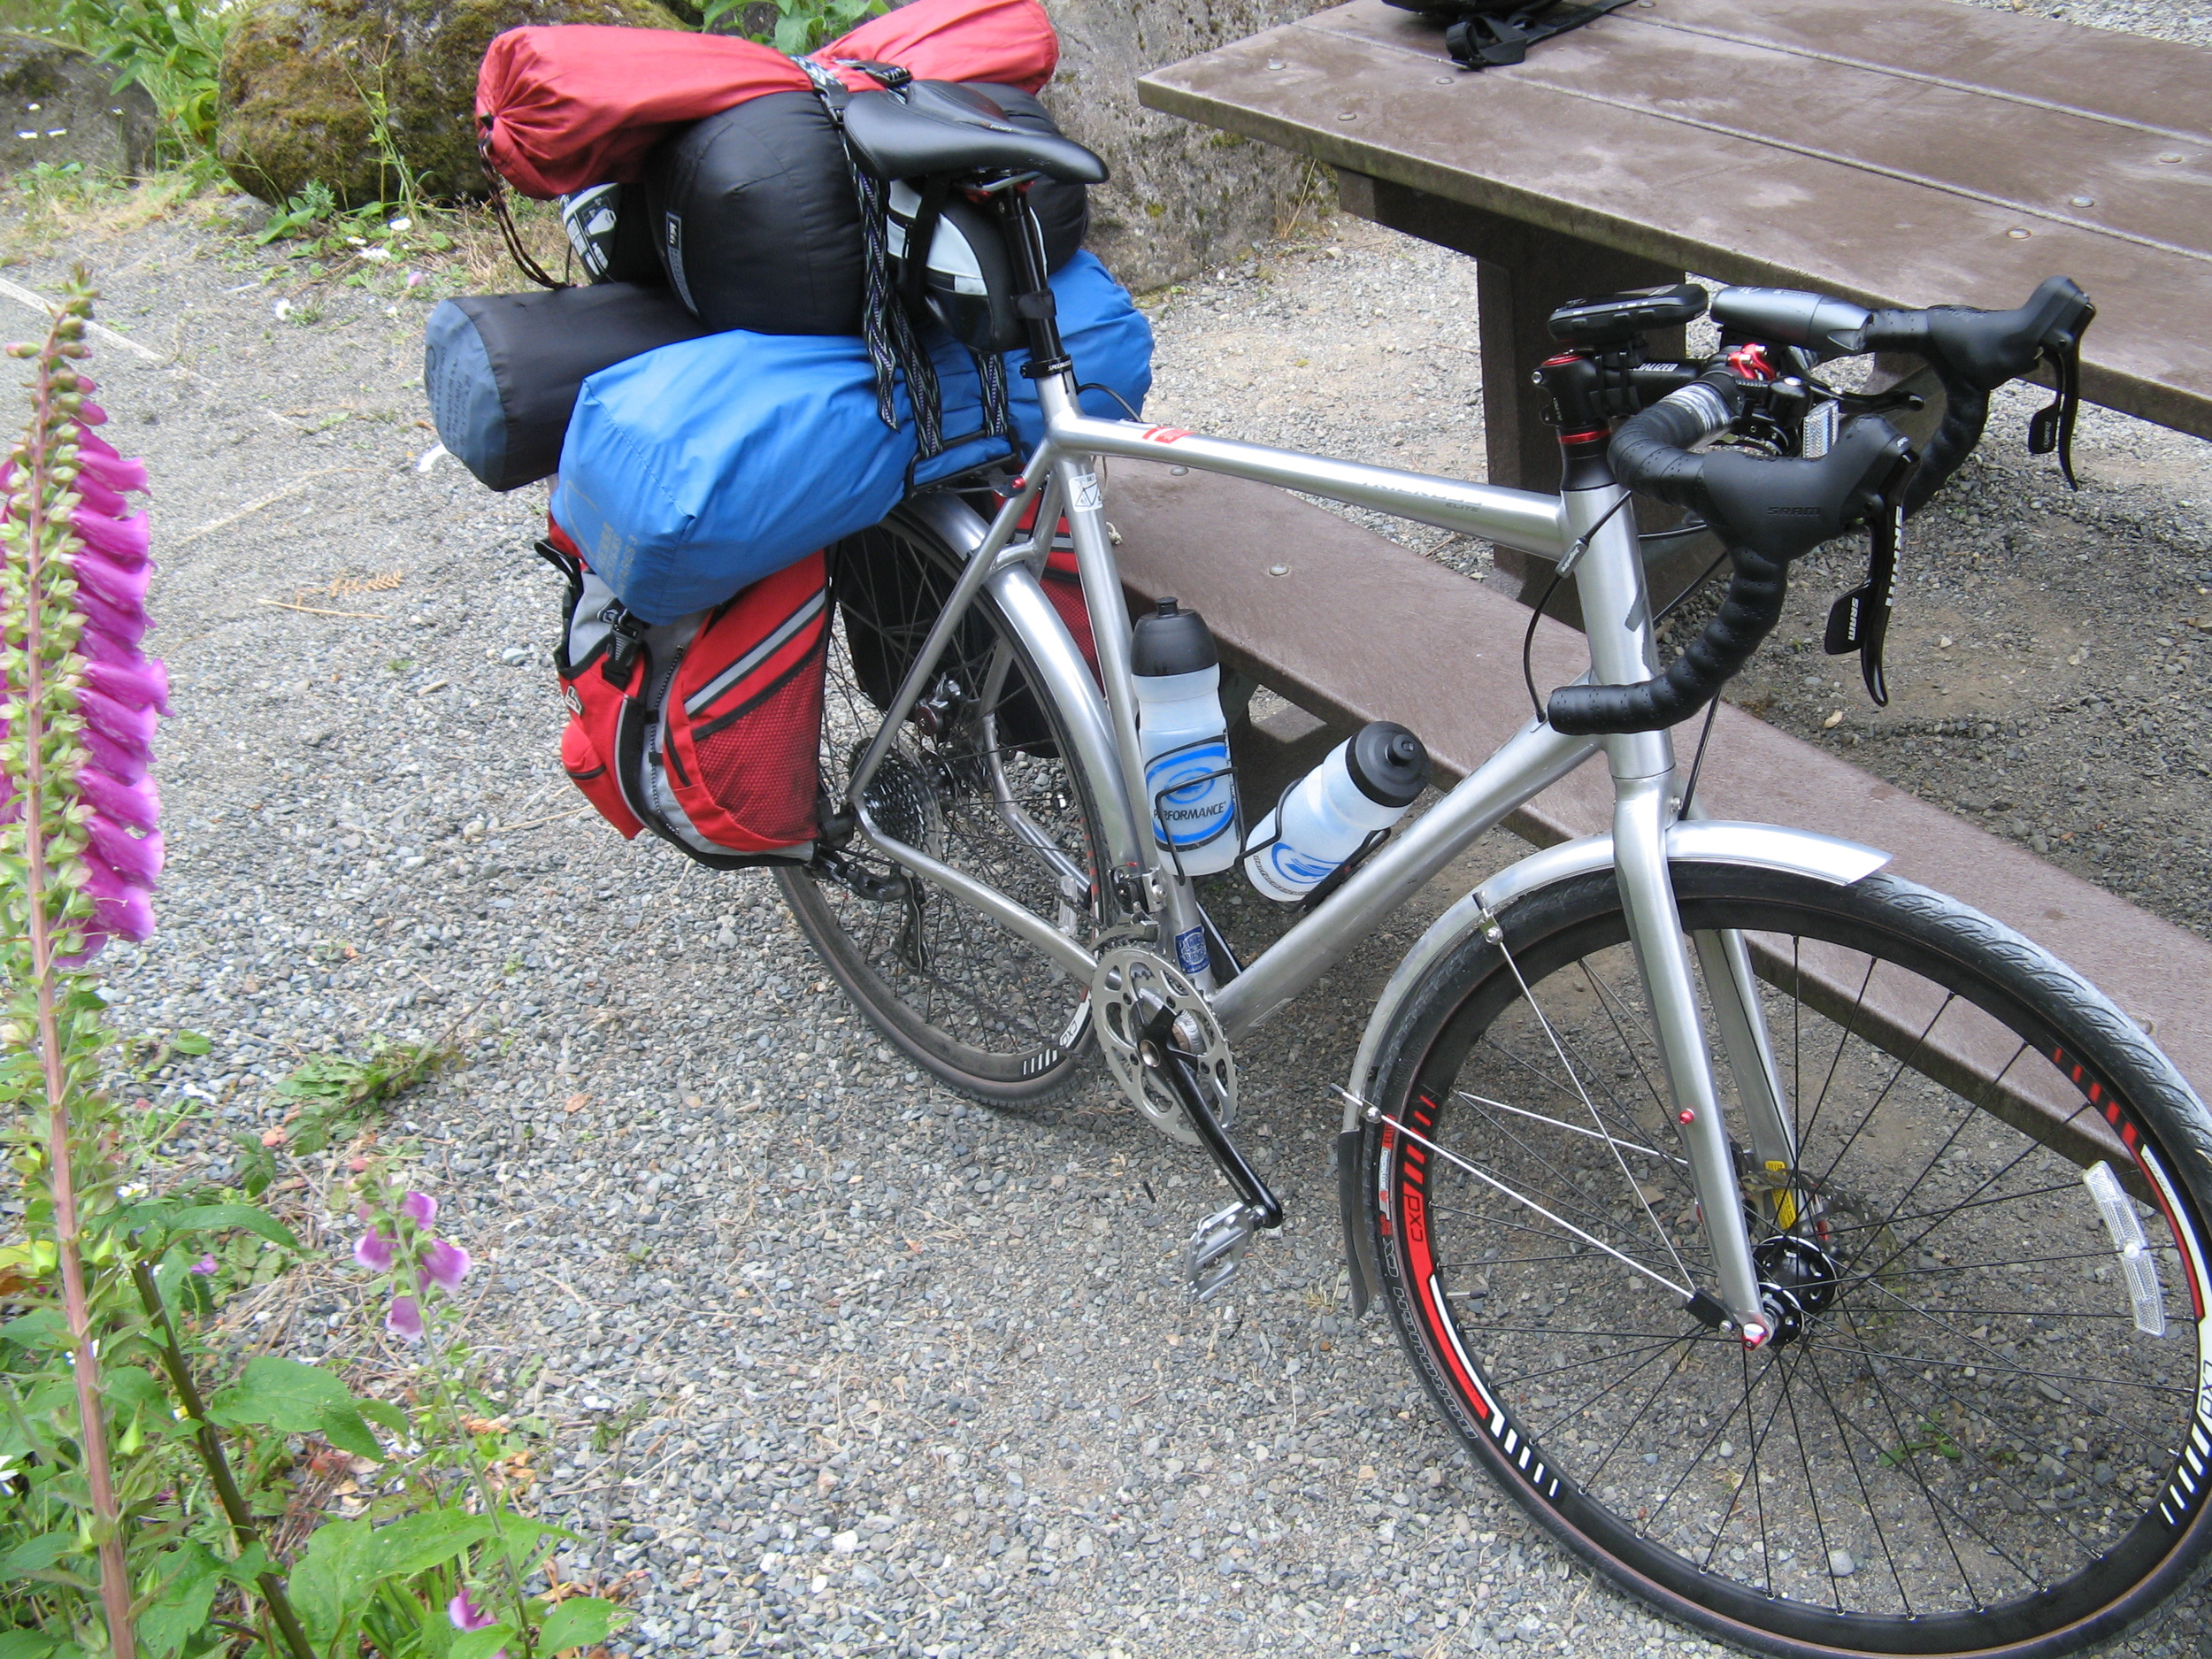 Specialized TriCross loaded down for a bike camping trip on the John Wayne Pioneer Trail, August 2011.